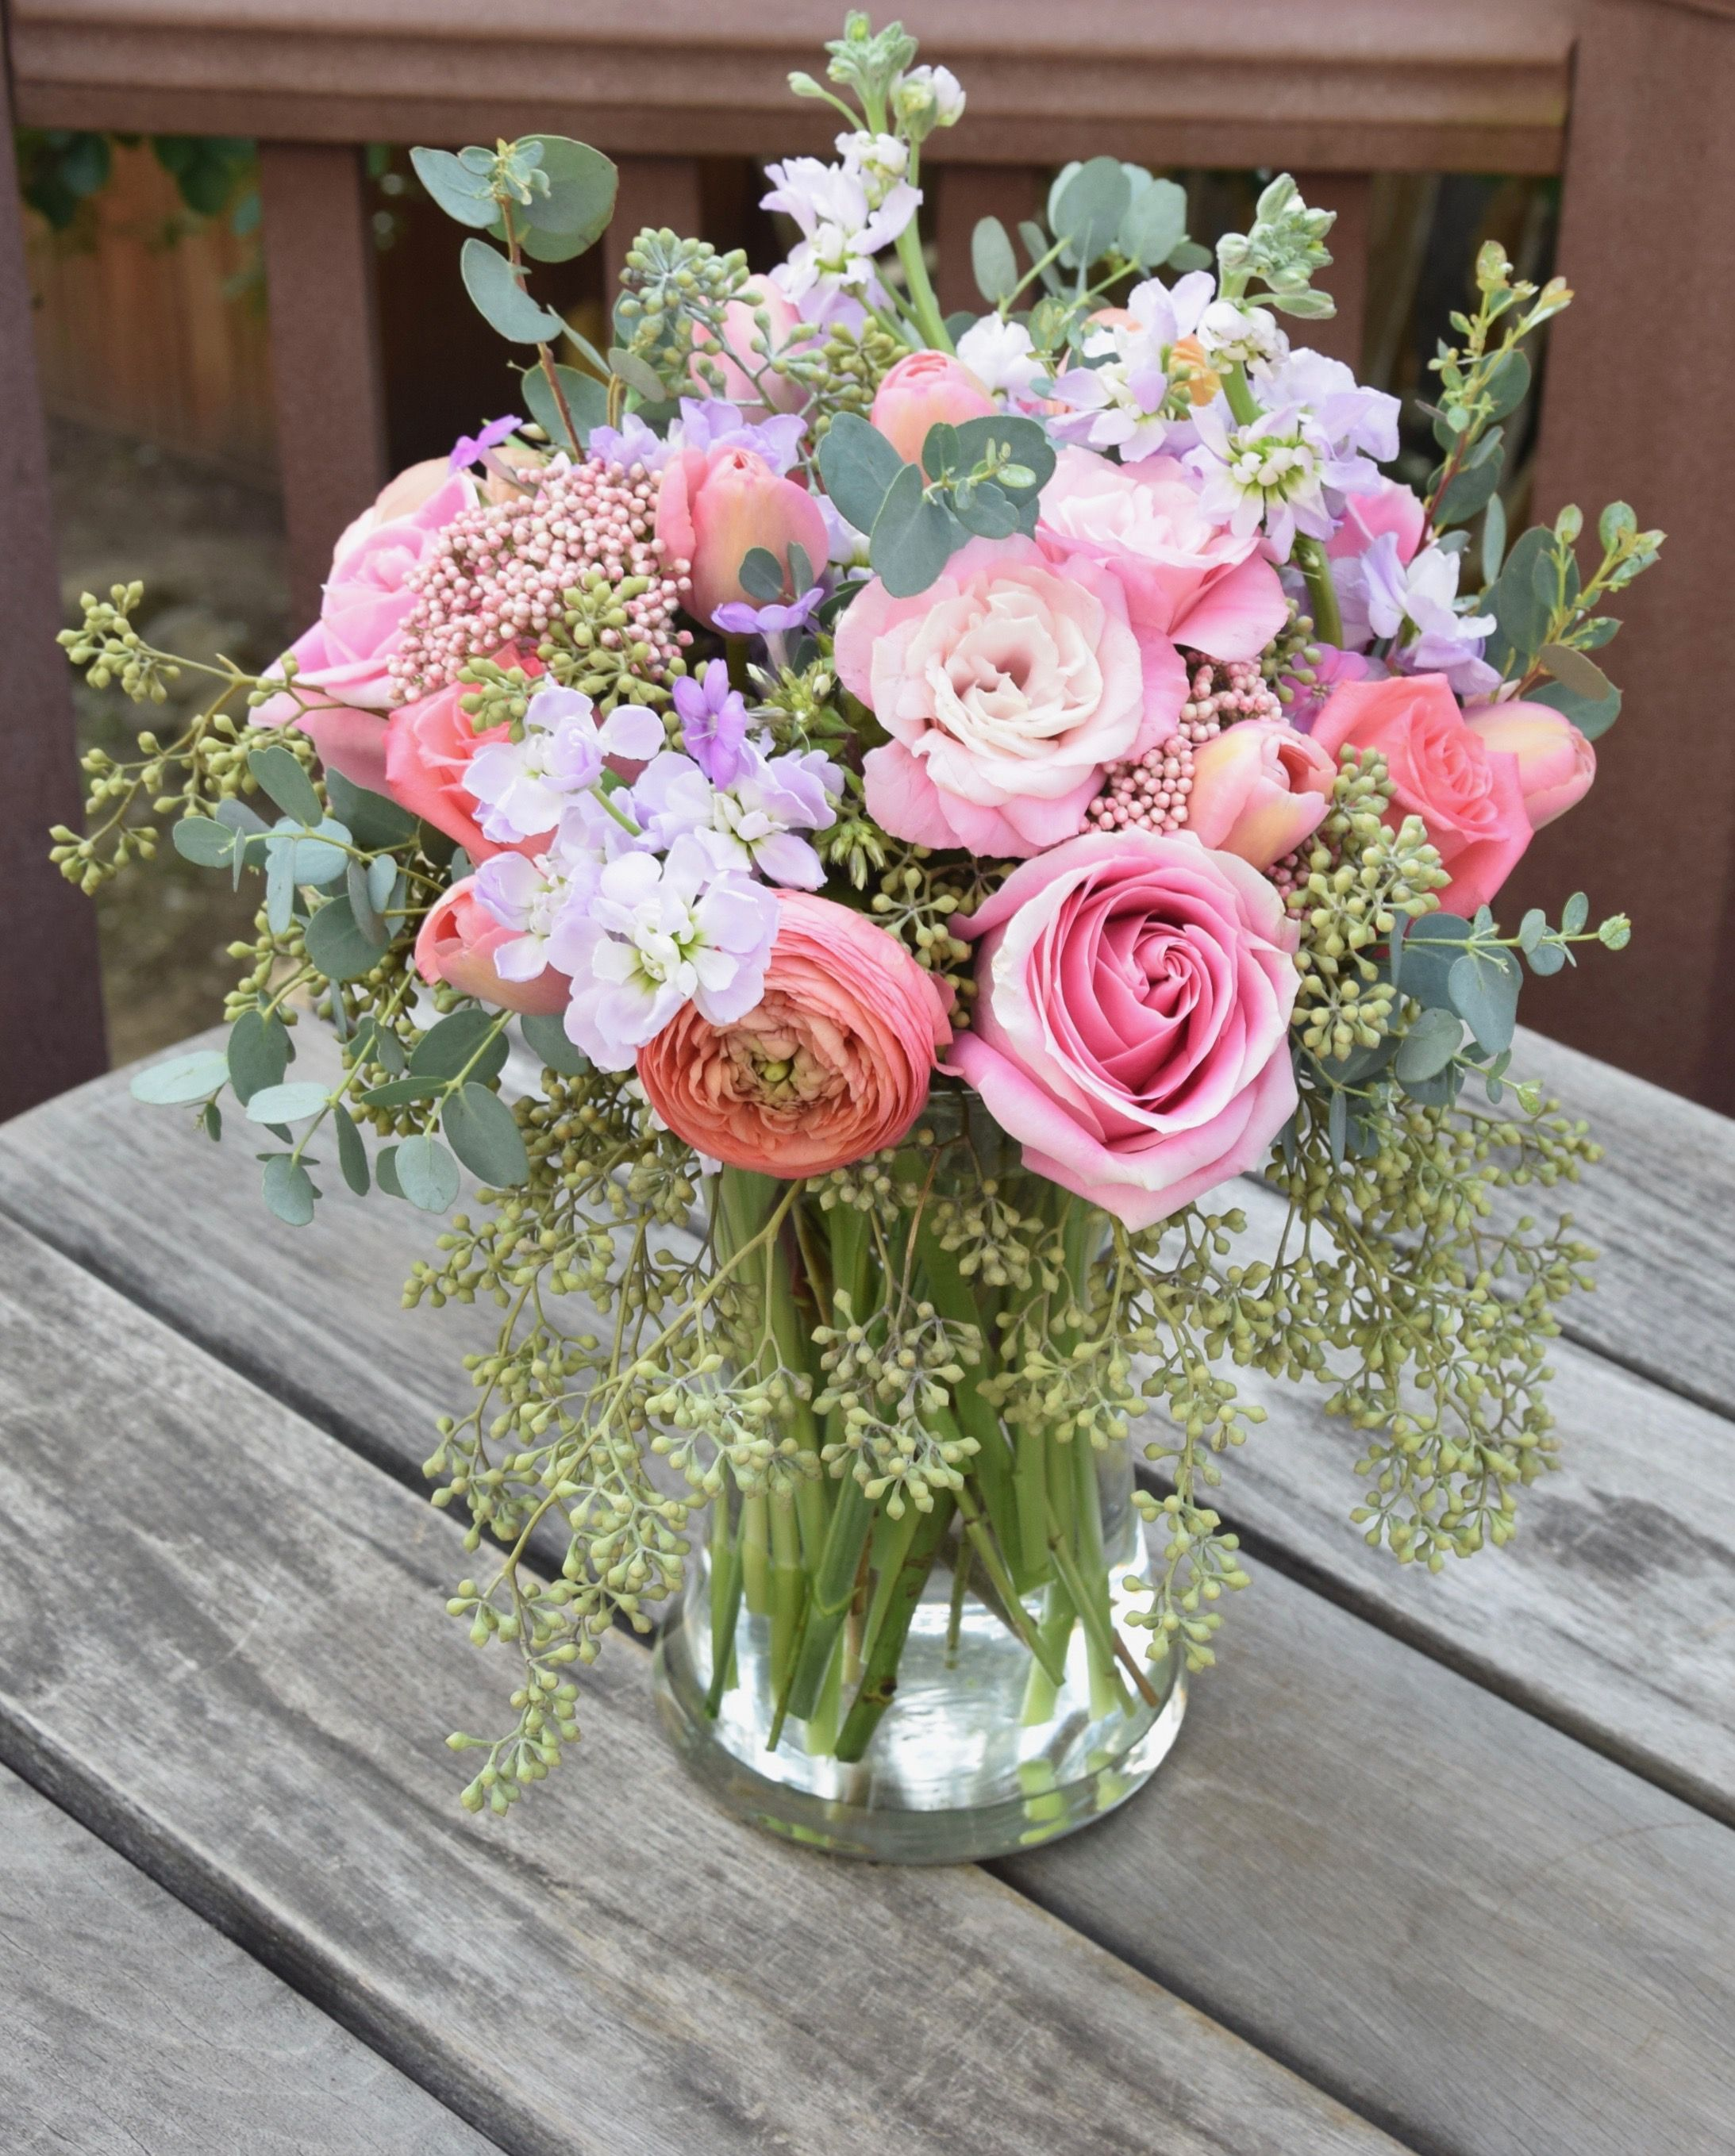 Flower Bouquet In A Vase Ranunculus Roses Lisianthus Stock Rice Flowers Tulips Eucaly Flower Arrangements Fresh Flowers Arrangements Flower Centerpieces